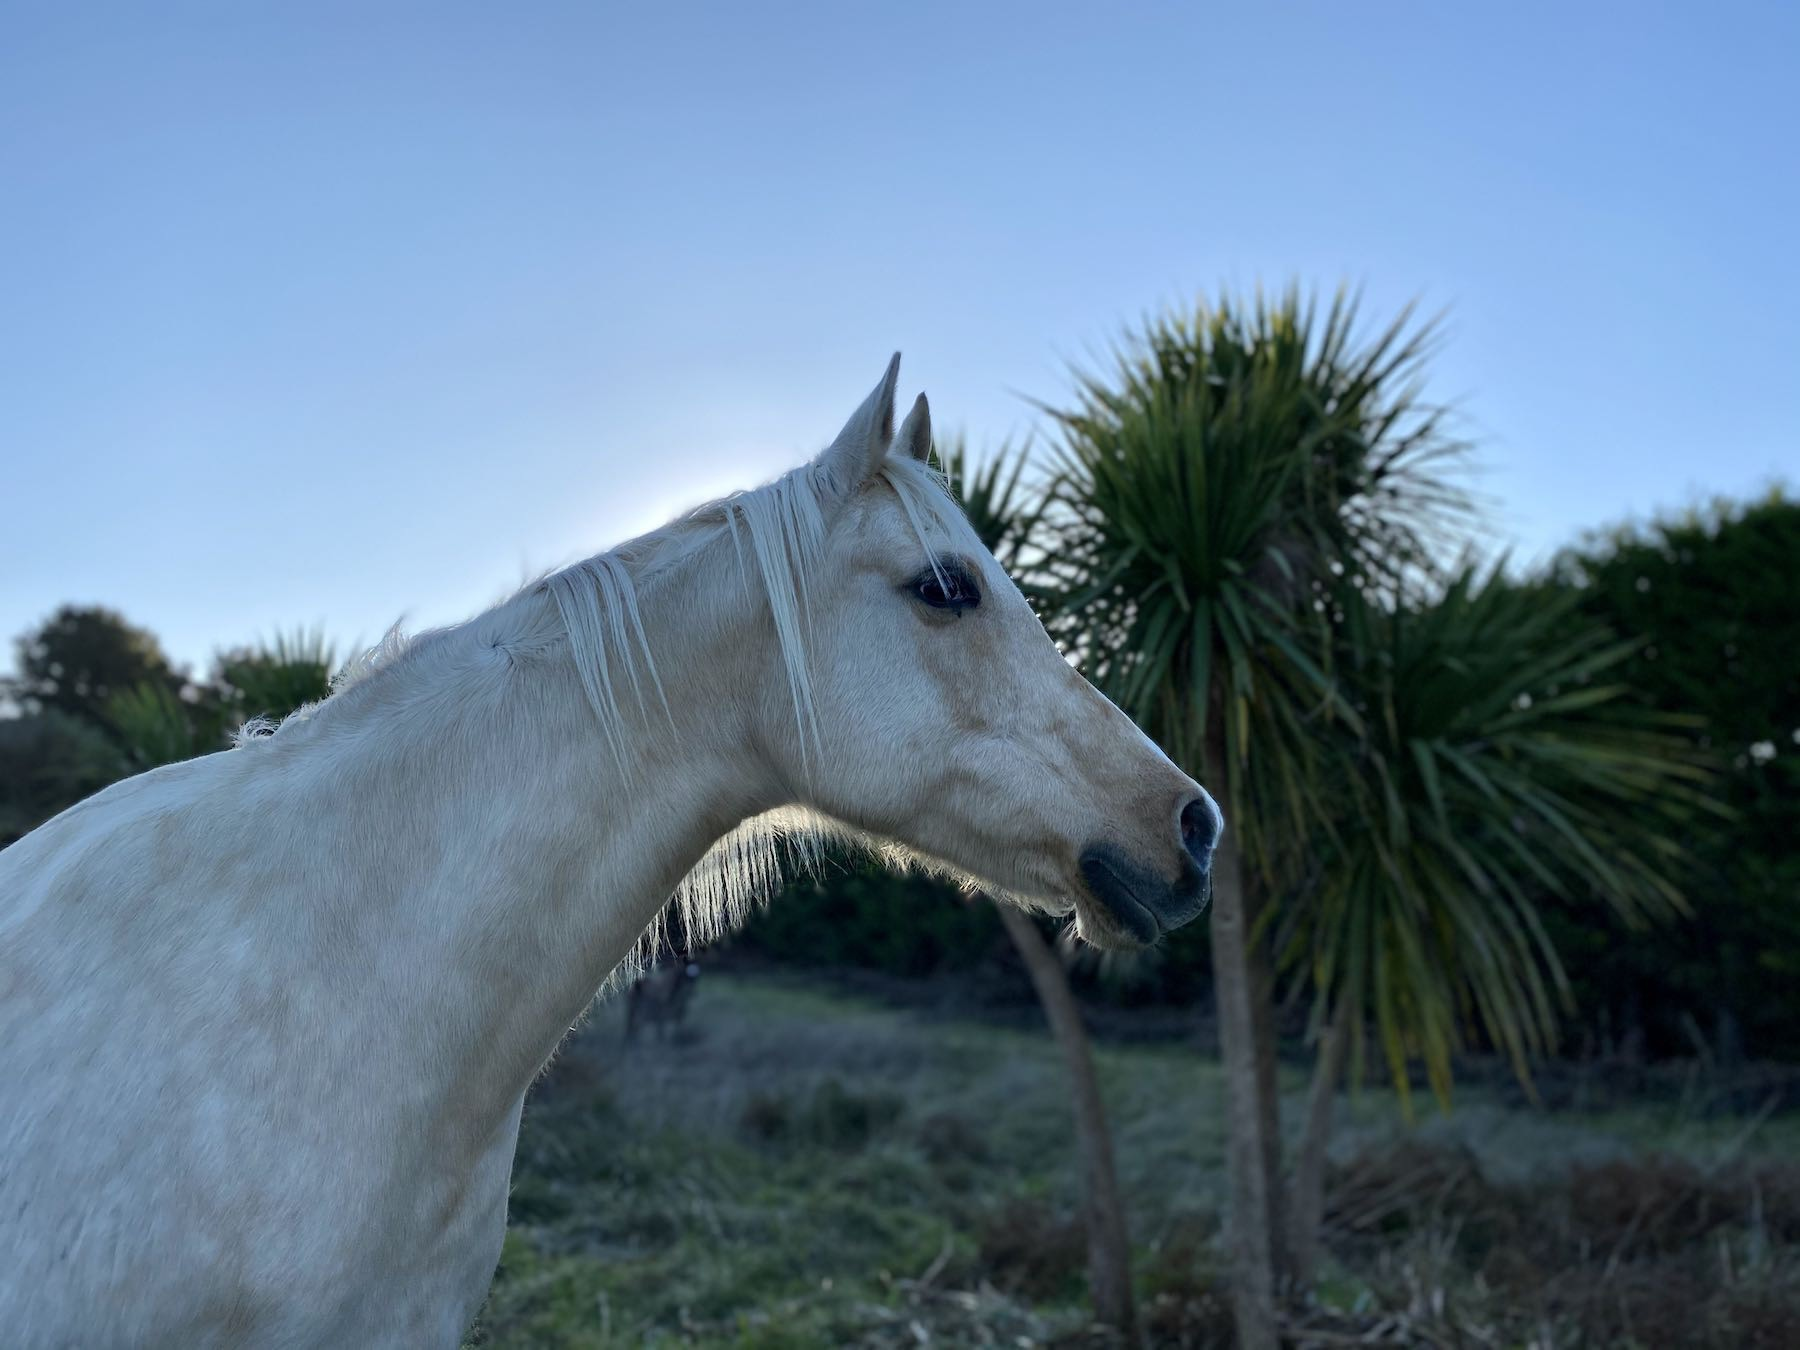 Side view of head and neck of a white horse.